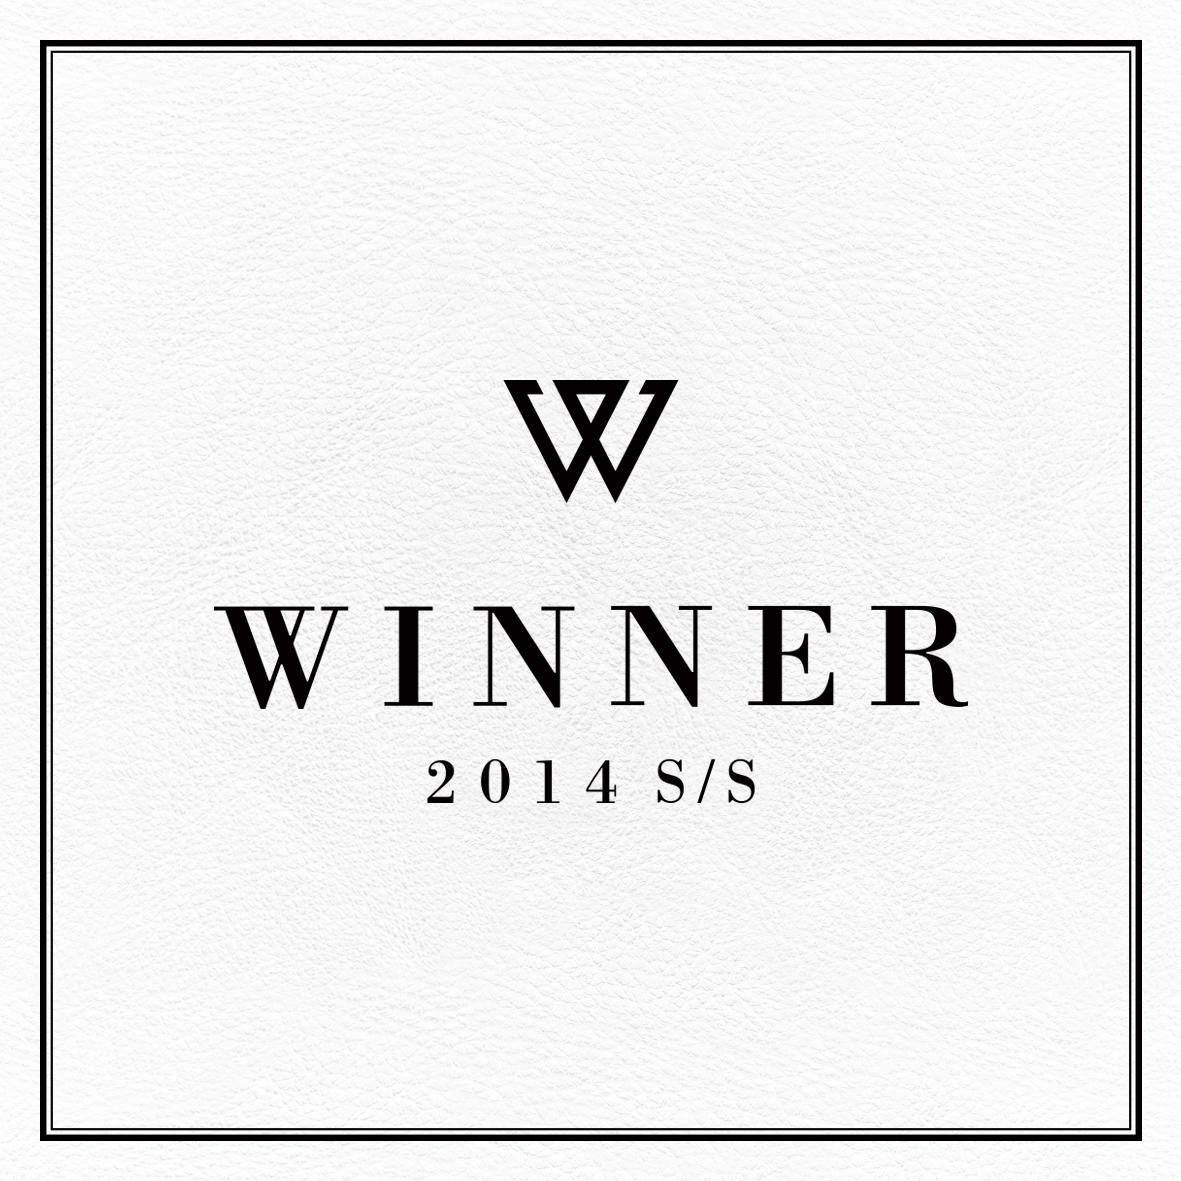 RT @ygent_official: [WINNER - DEBUT ALBUM '2014S/S'] #WINNER #2014SS Available now on iTunes @ http://t.co/d2aClAaIwi http://t.co/TKlaje0PK6